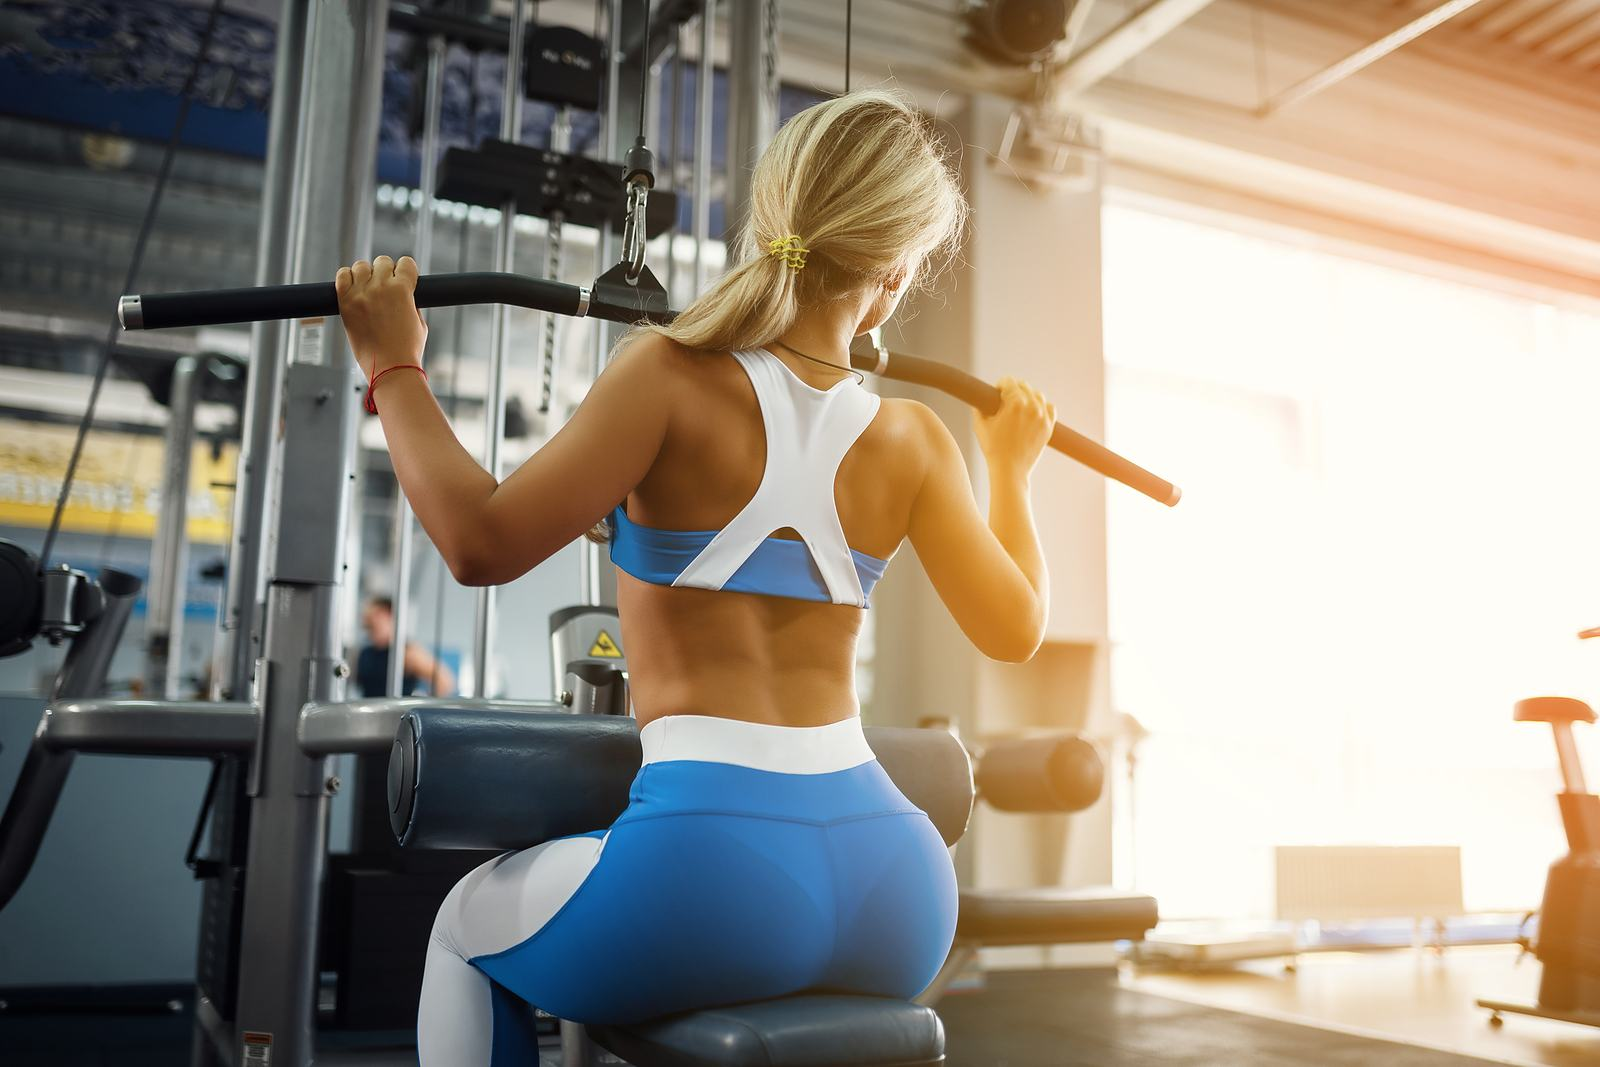 Are you having back trouble? Good news. Today, we have a contributed post discussing the 5 best ways to prevent back pain. You will want to pay attention to #3.